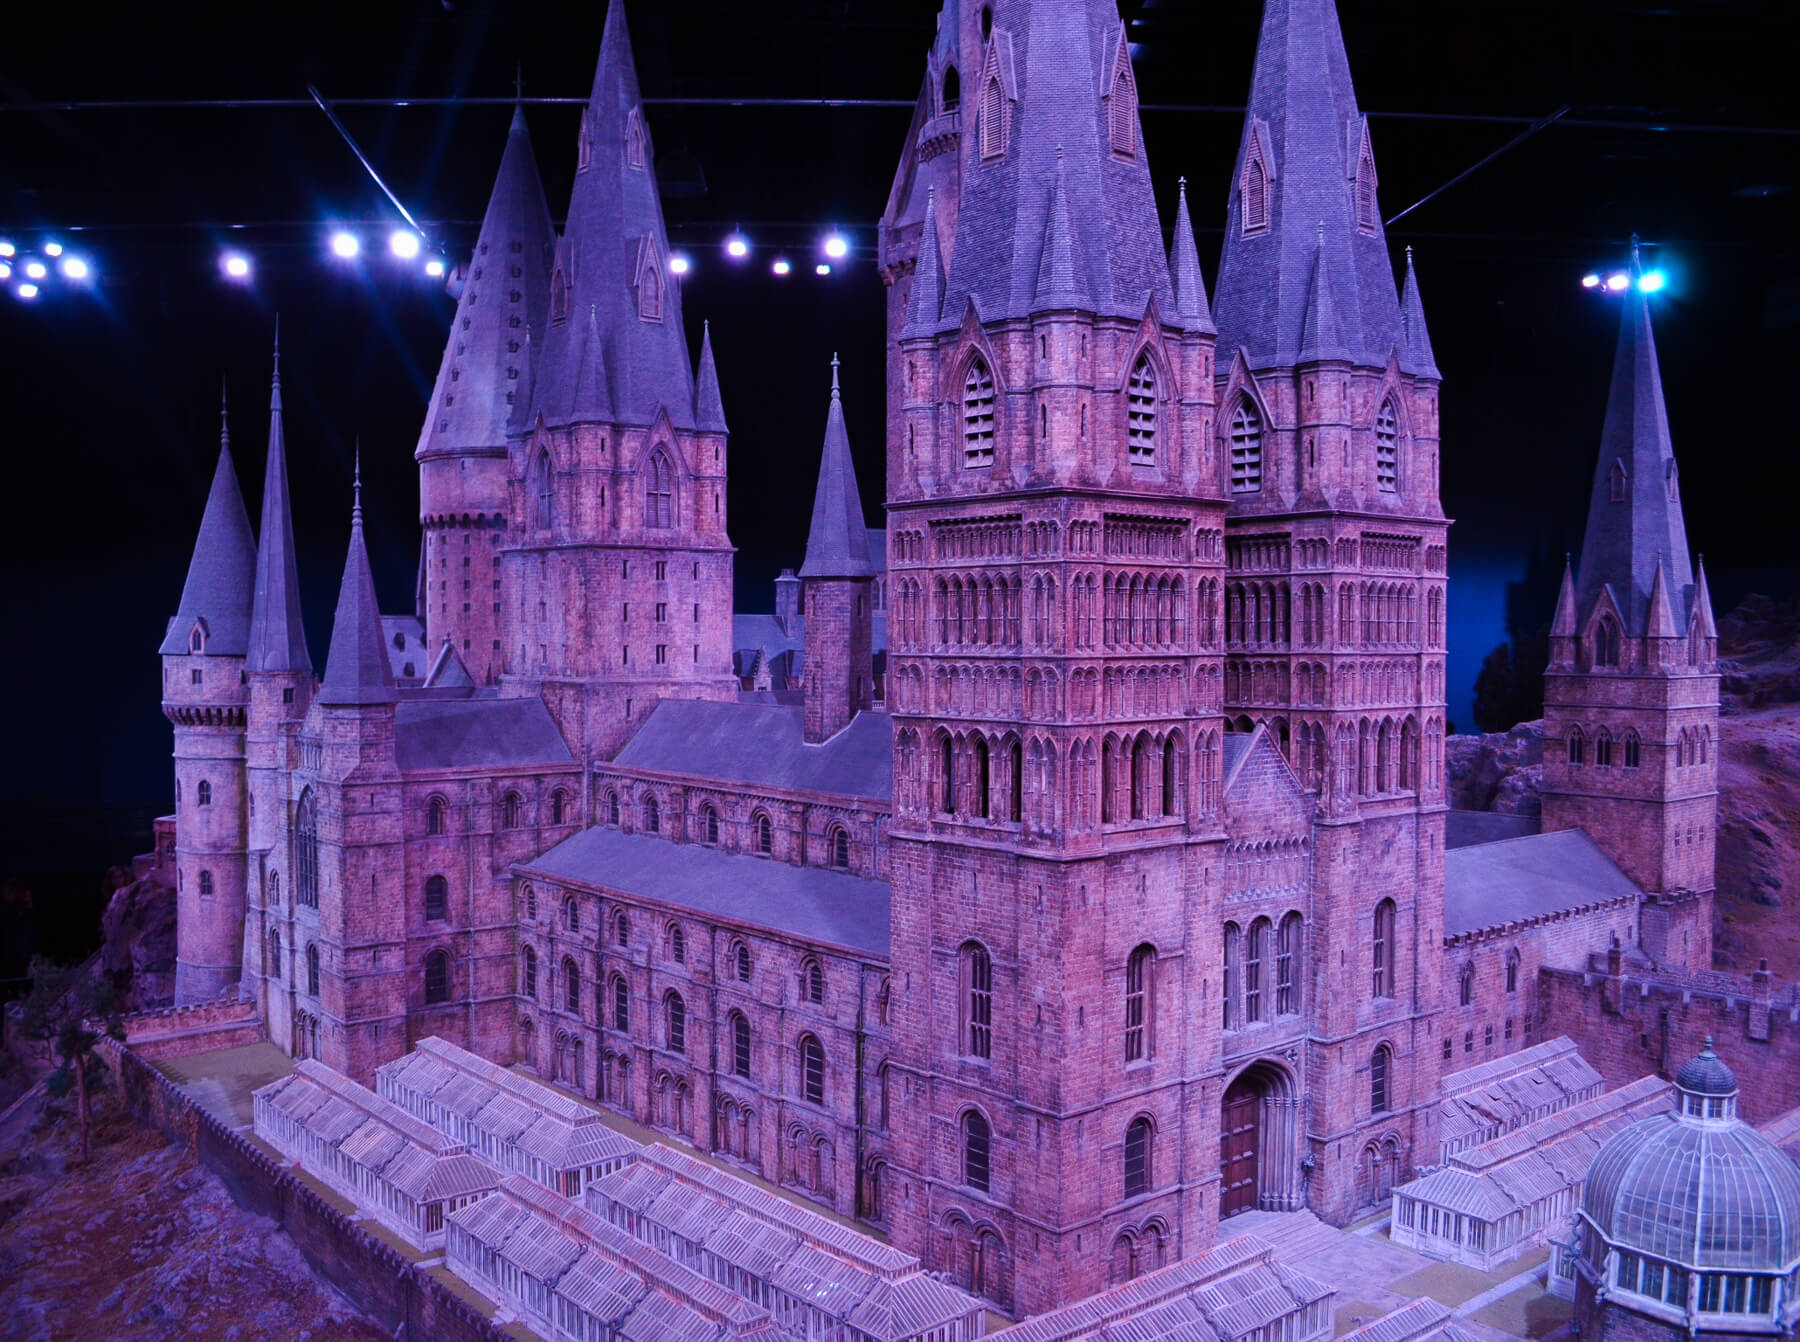 purple lighting on huge model castle